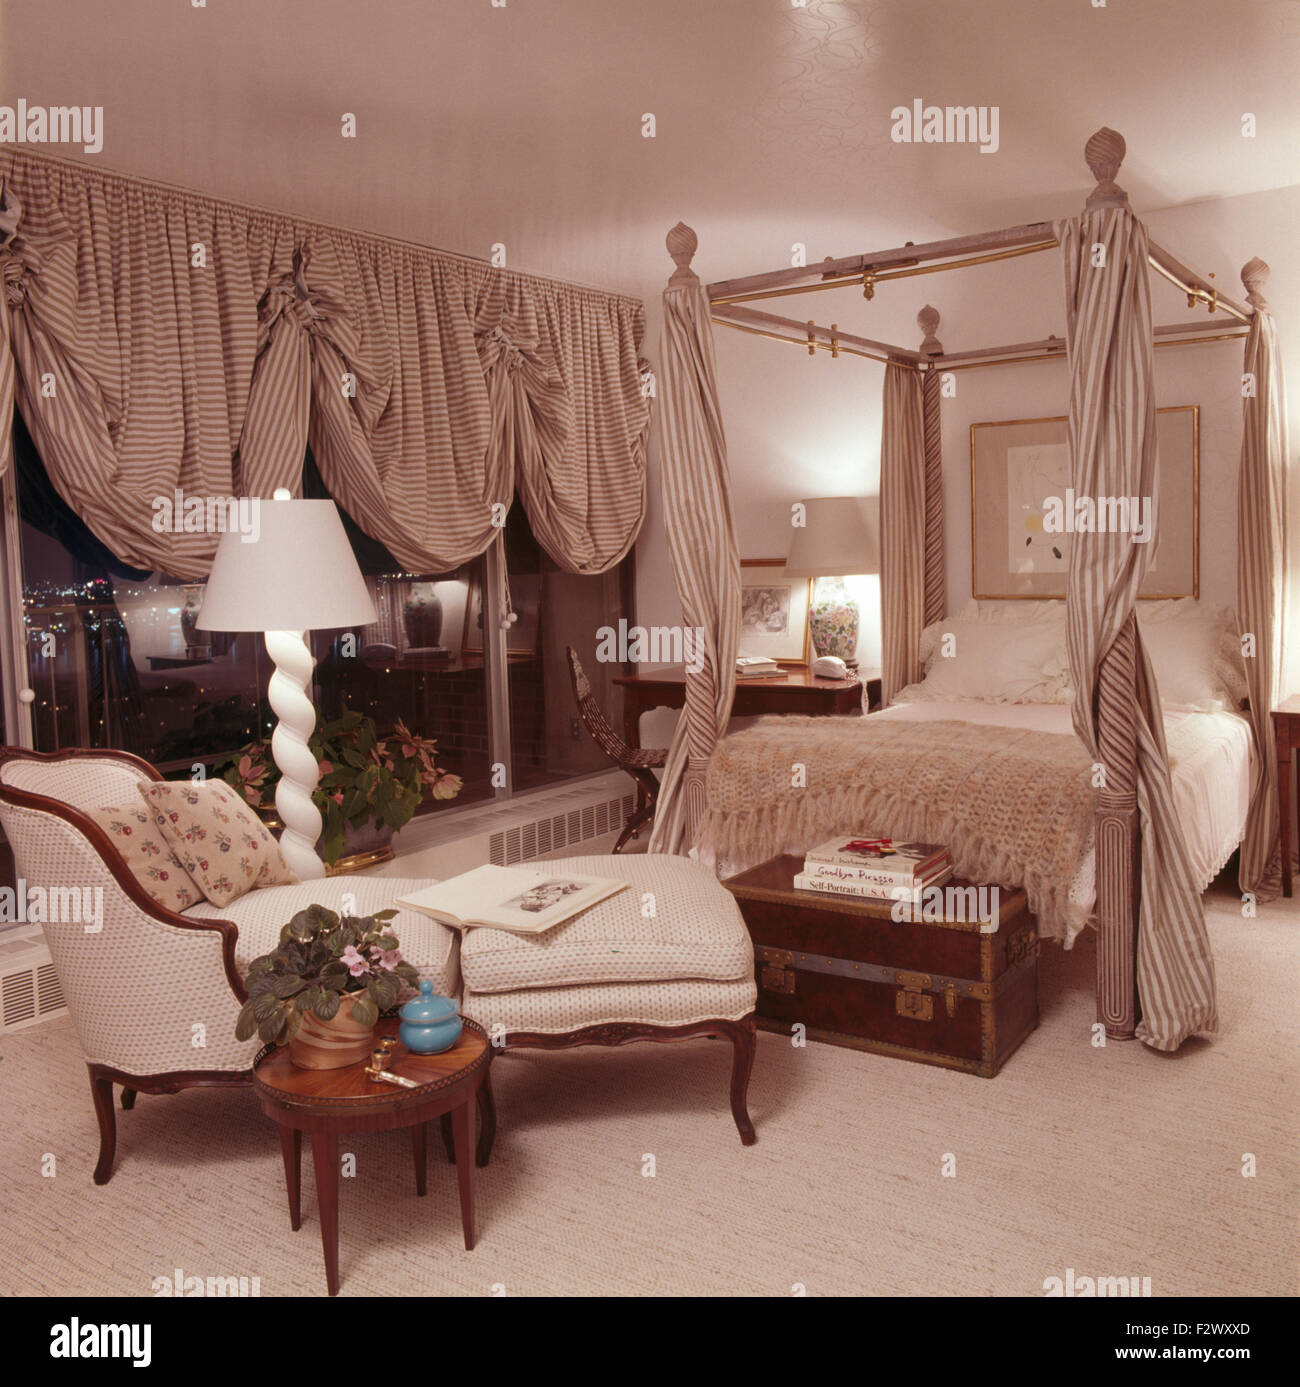 Striped Festoon Blinds On Windows In Opulent Eighties Bedroom With Matching  Striped Drapes On Four Poster